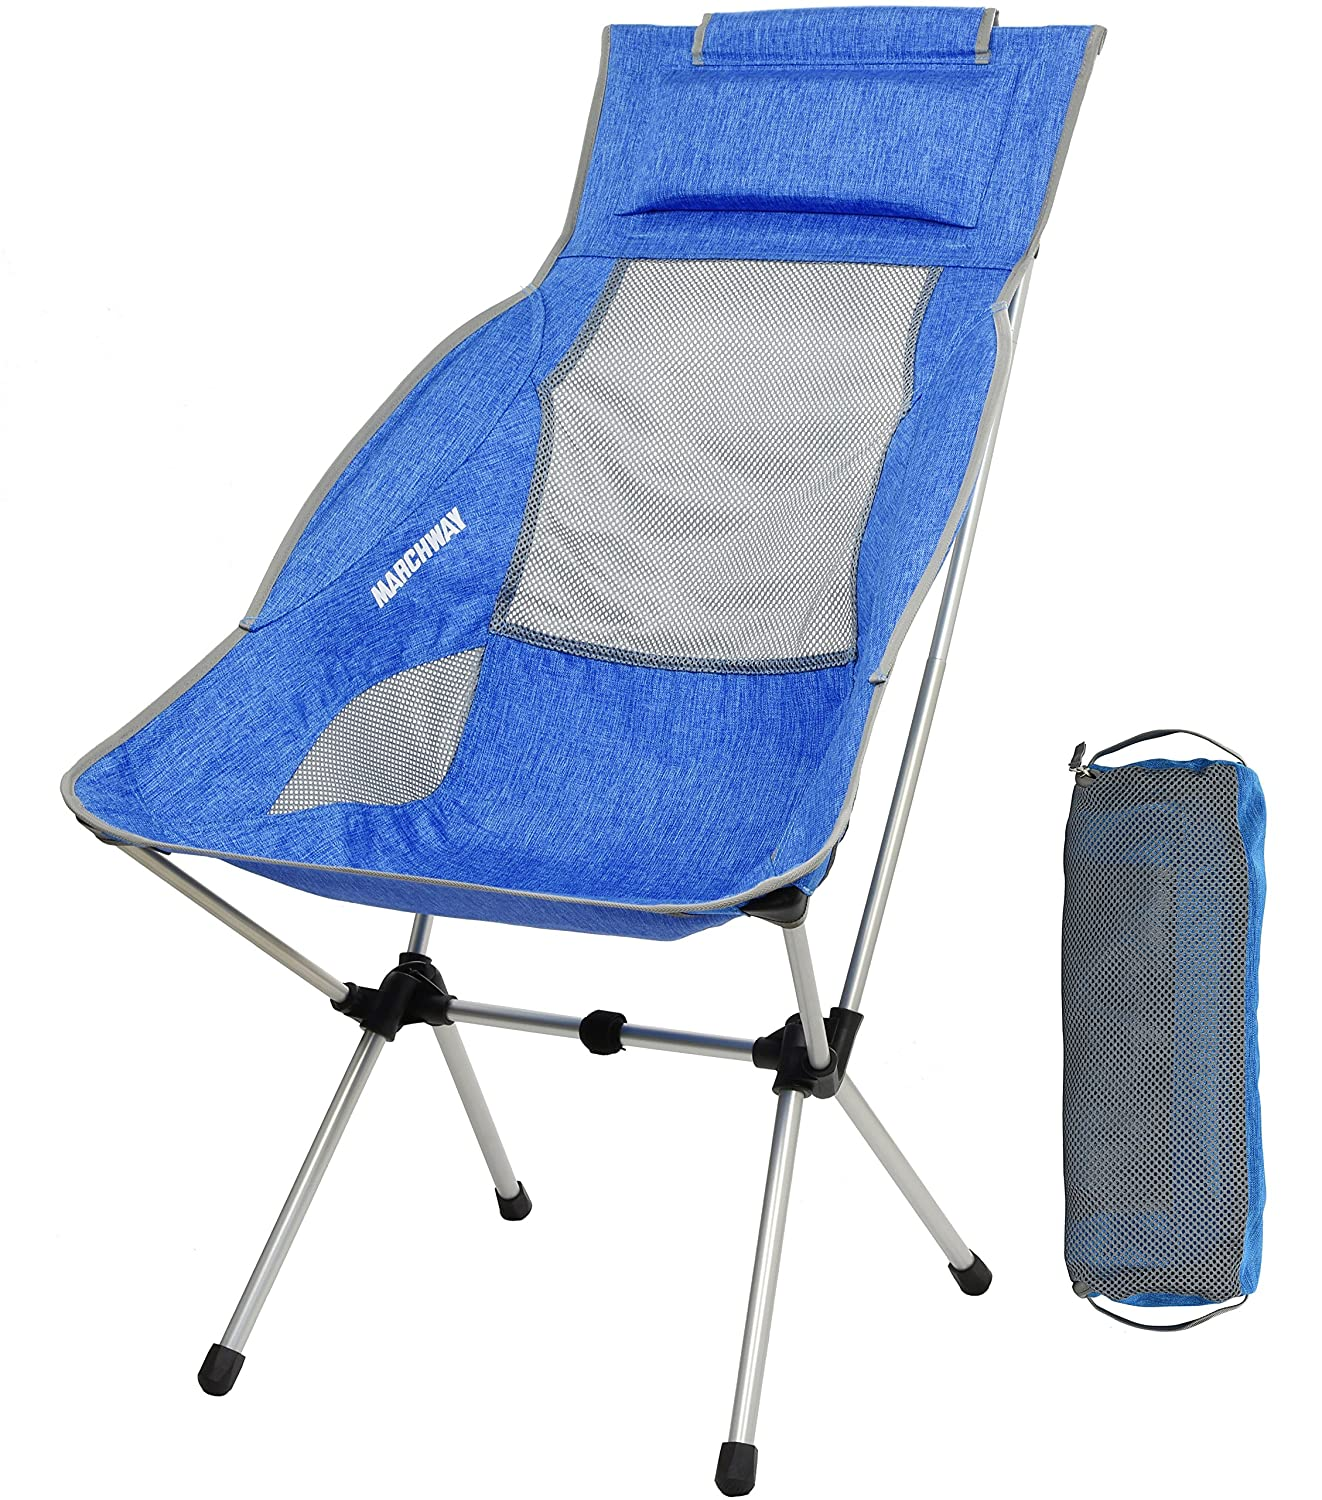 Lightweight Folding High Back Camping Chair with Headrest Portable Compact for Outdoor Camp Light Green Backpacking Travel Hiking Festival Picnic